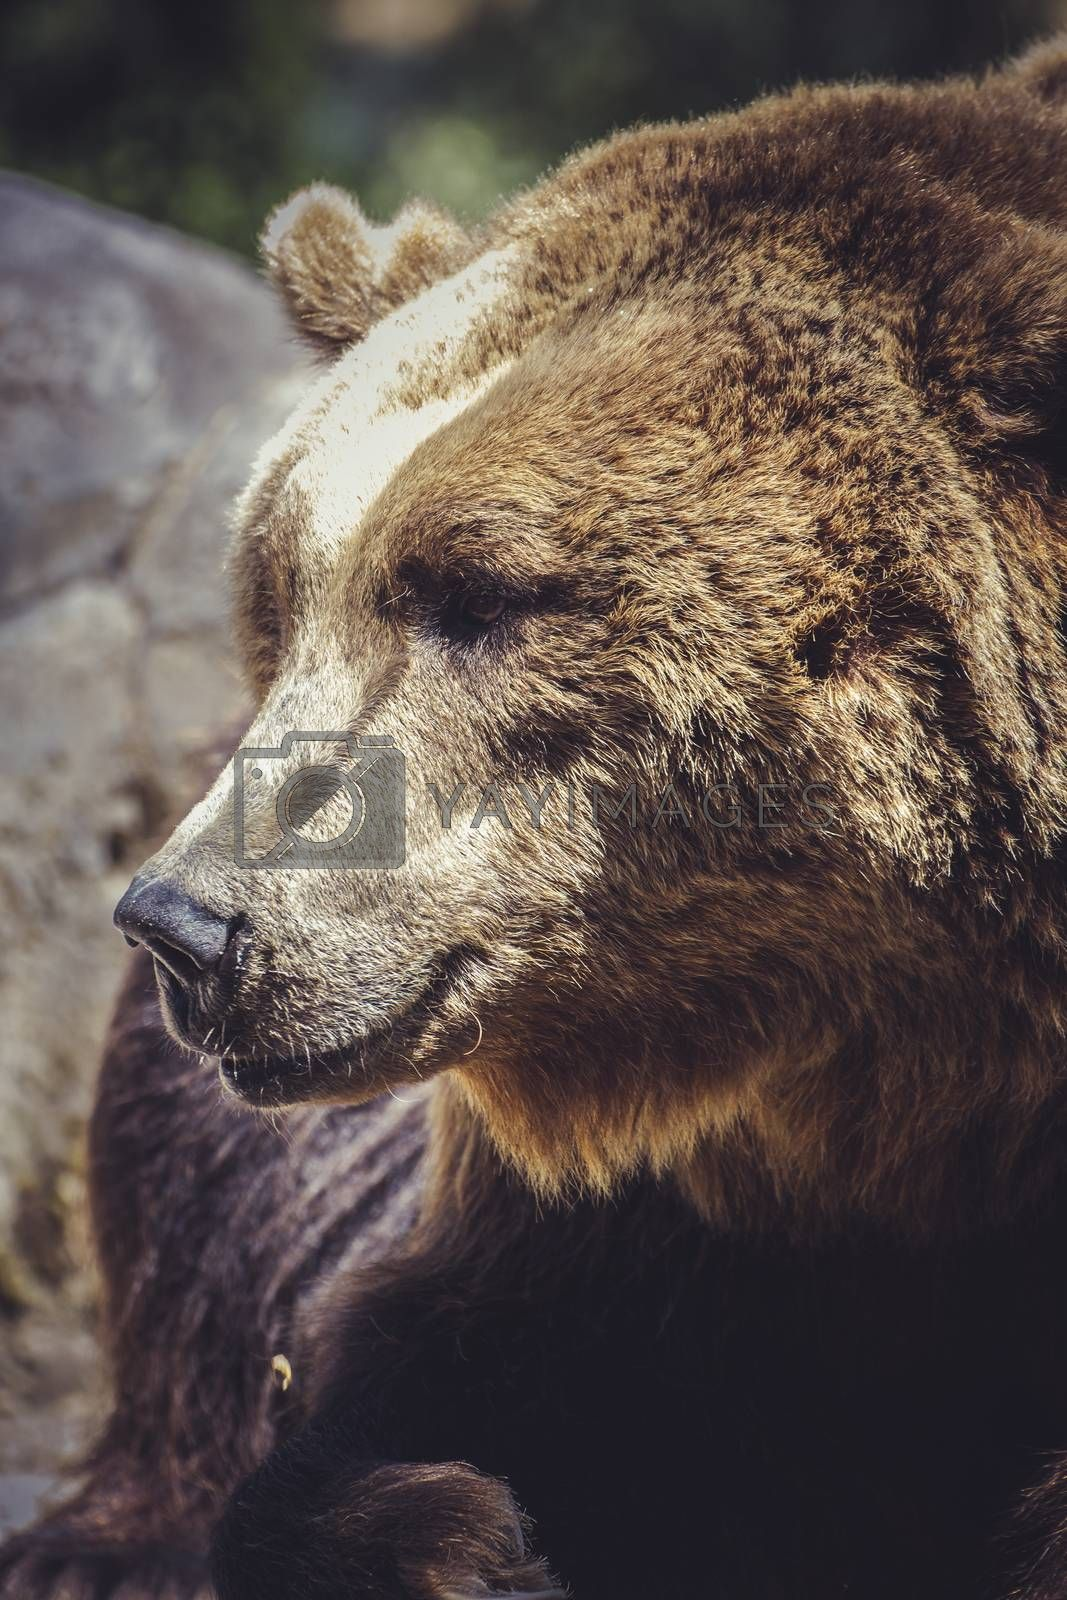 danger, Spanish powerful brown bear, huge and strong  wild animal